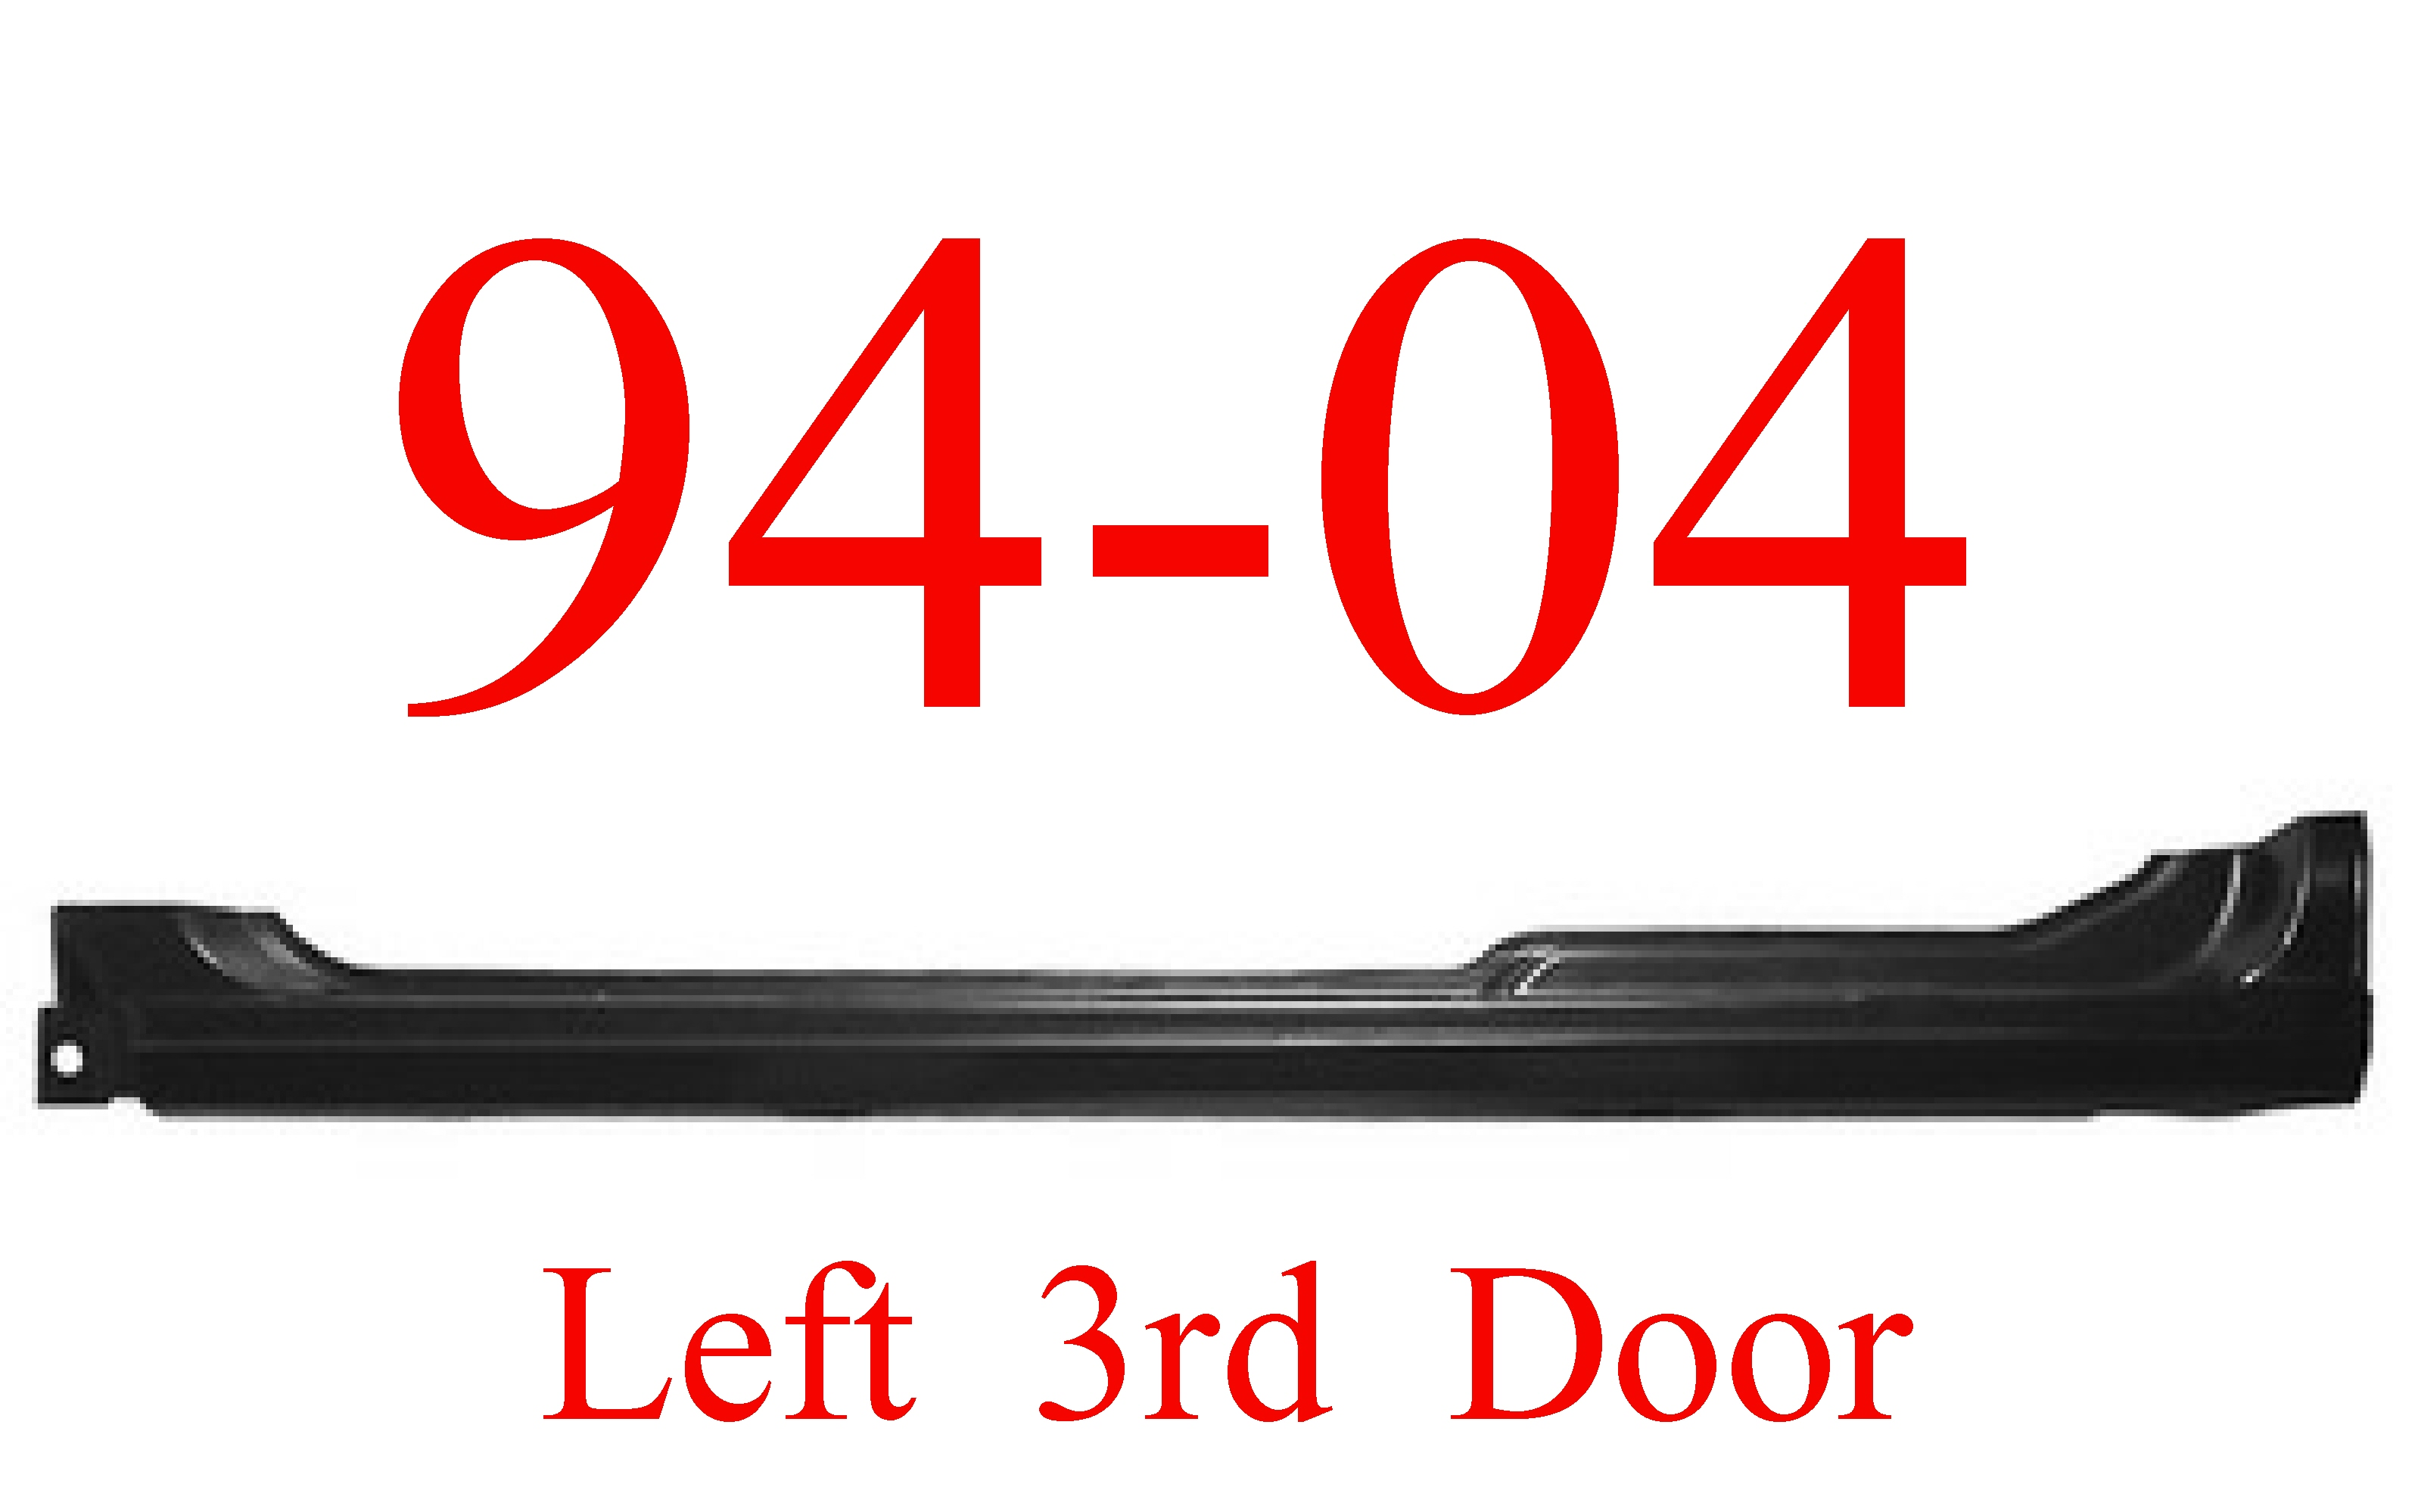 94-04 LEFT Chevy S10 3rd Door Rocker